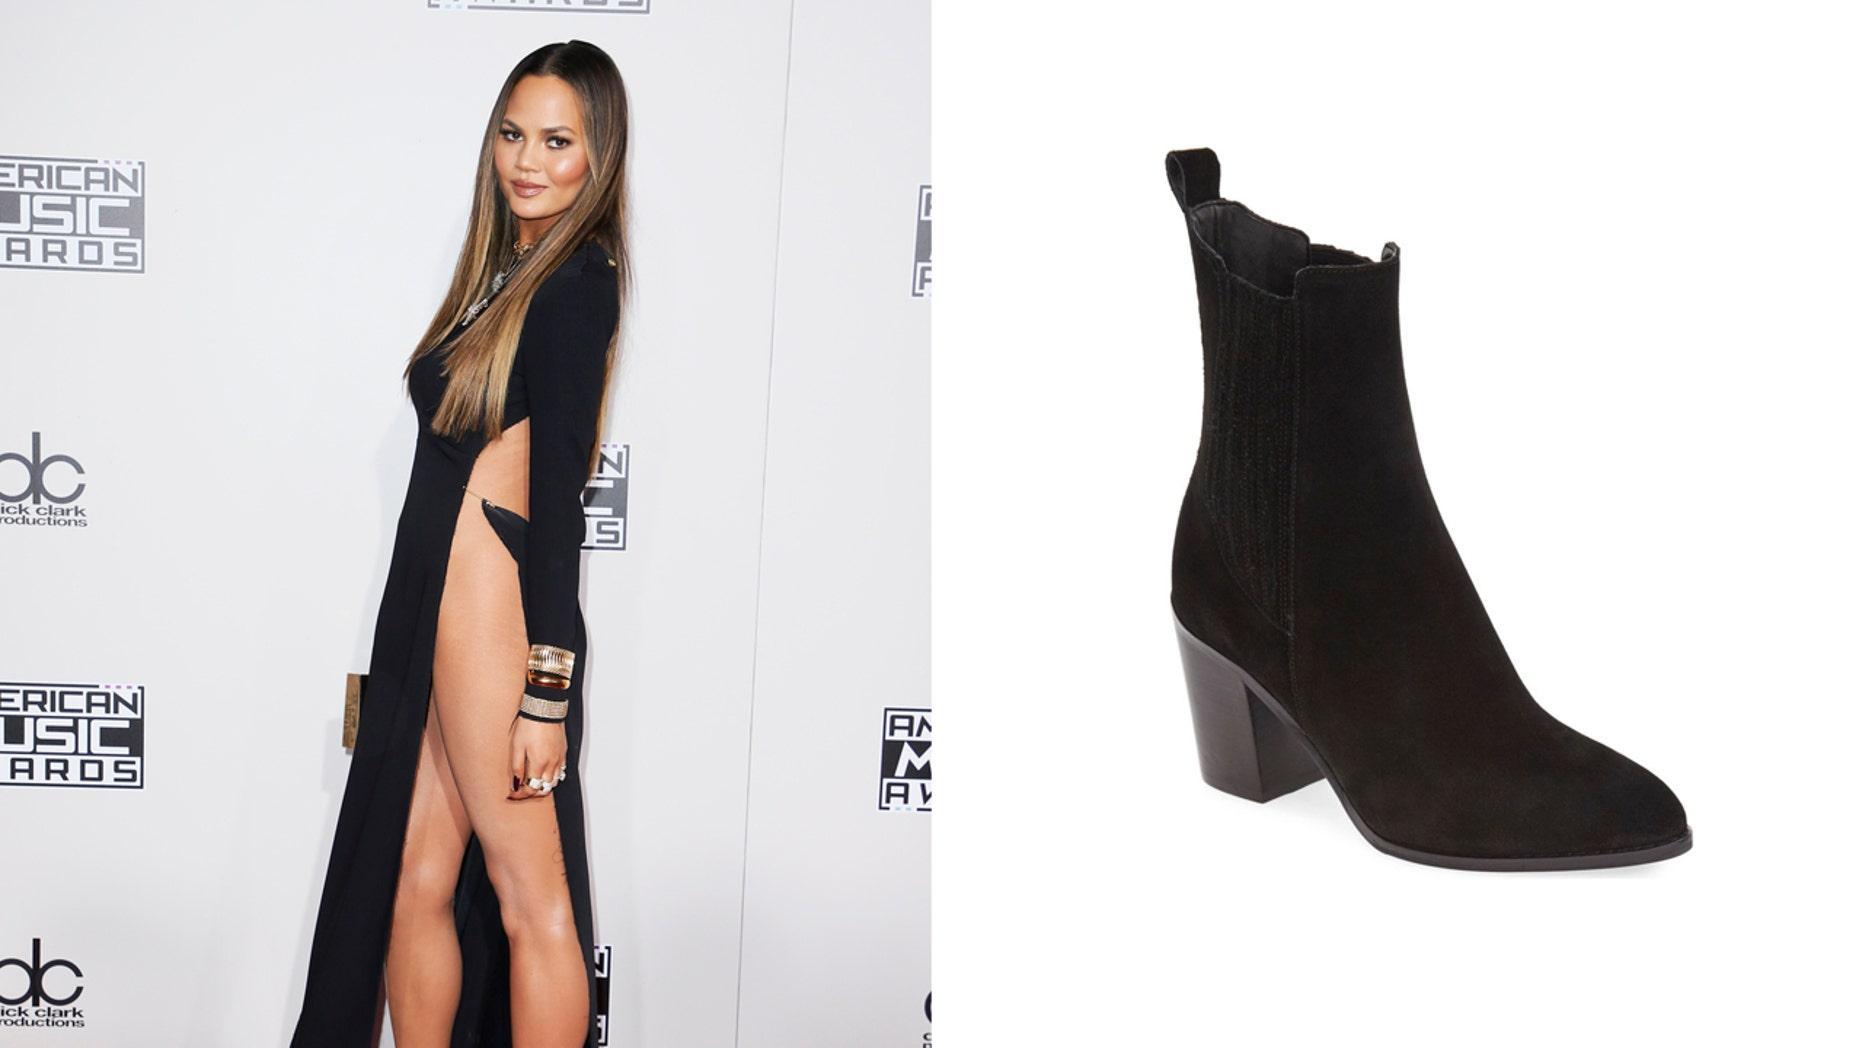 Model Chrissy Teigen says she likes to cool even when she flies.